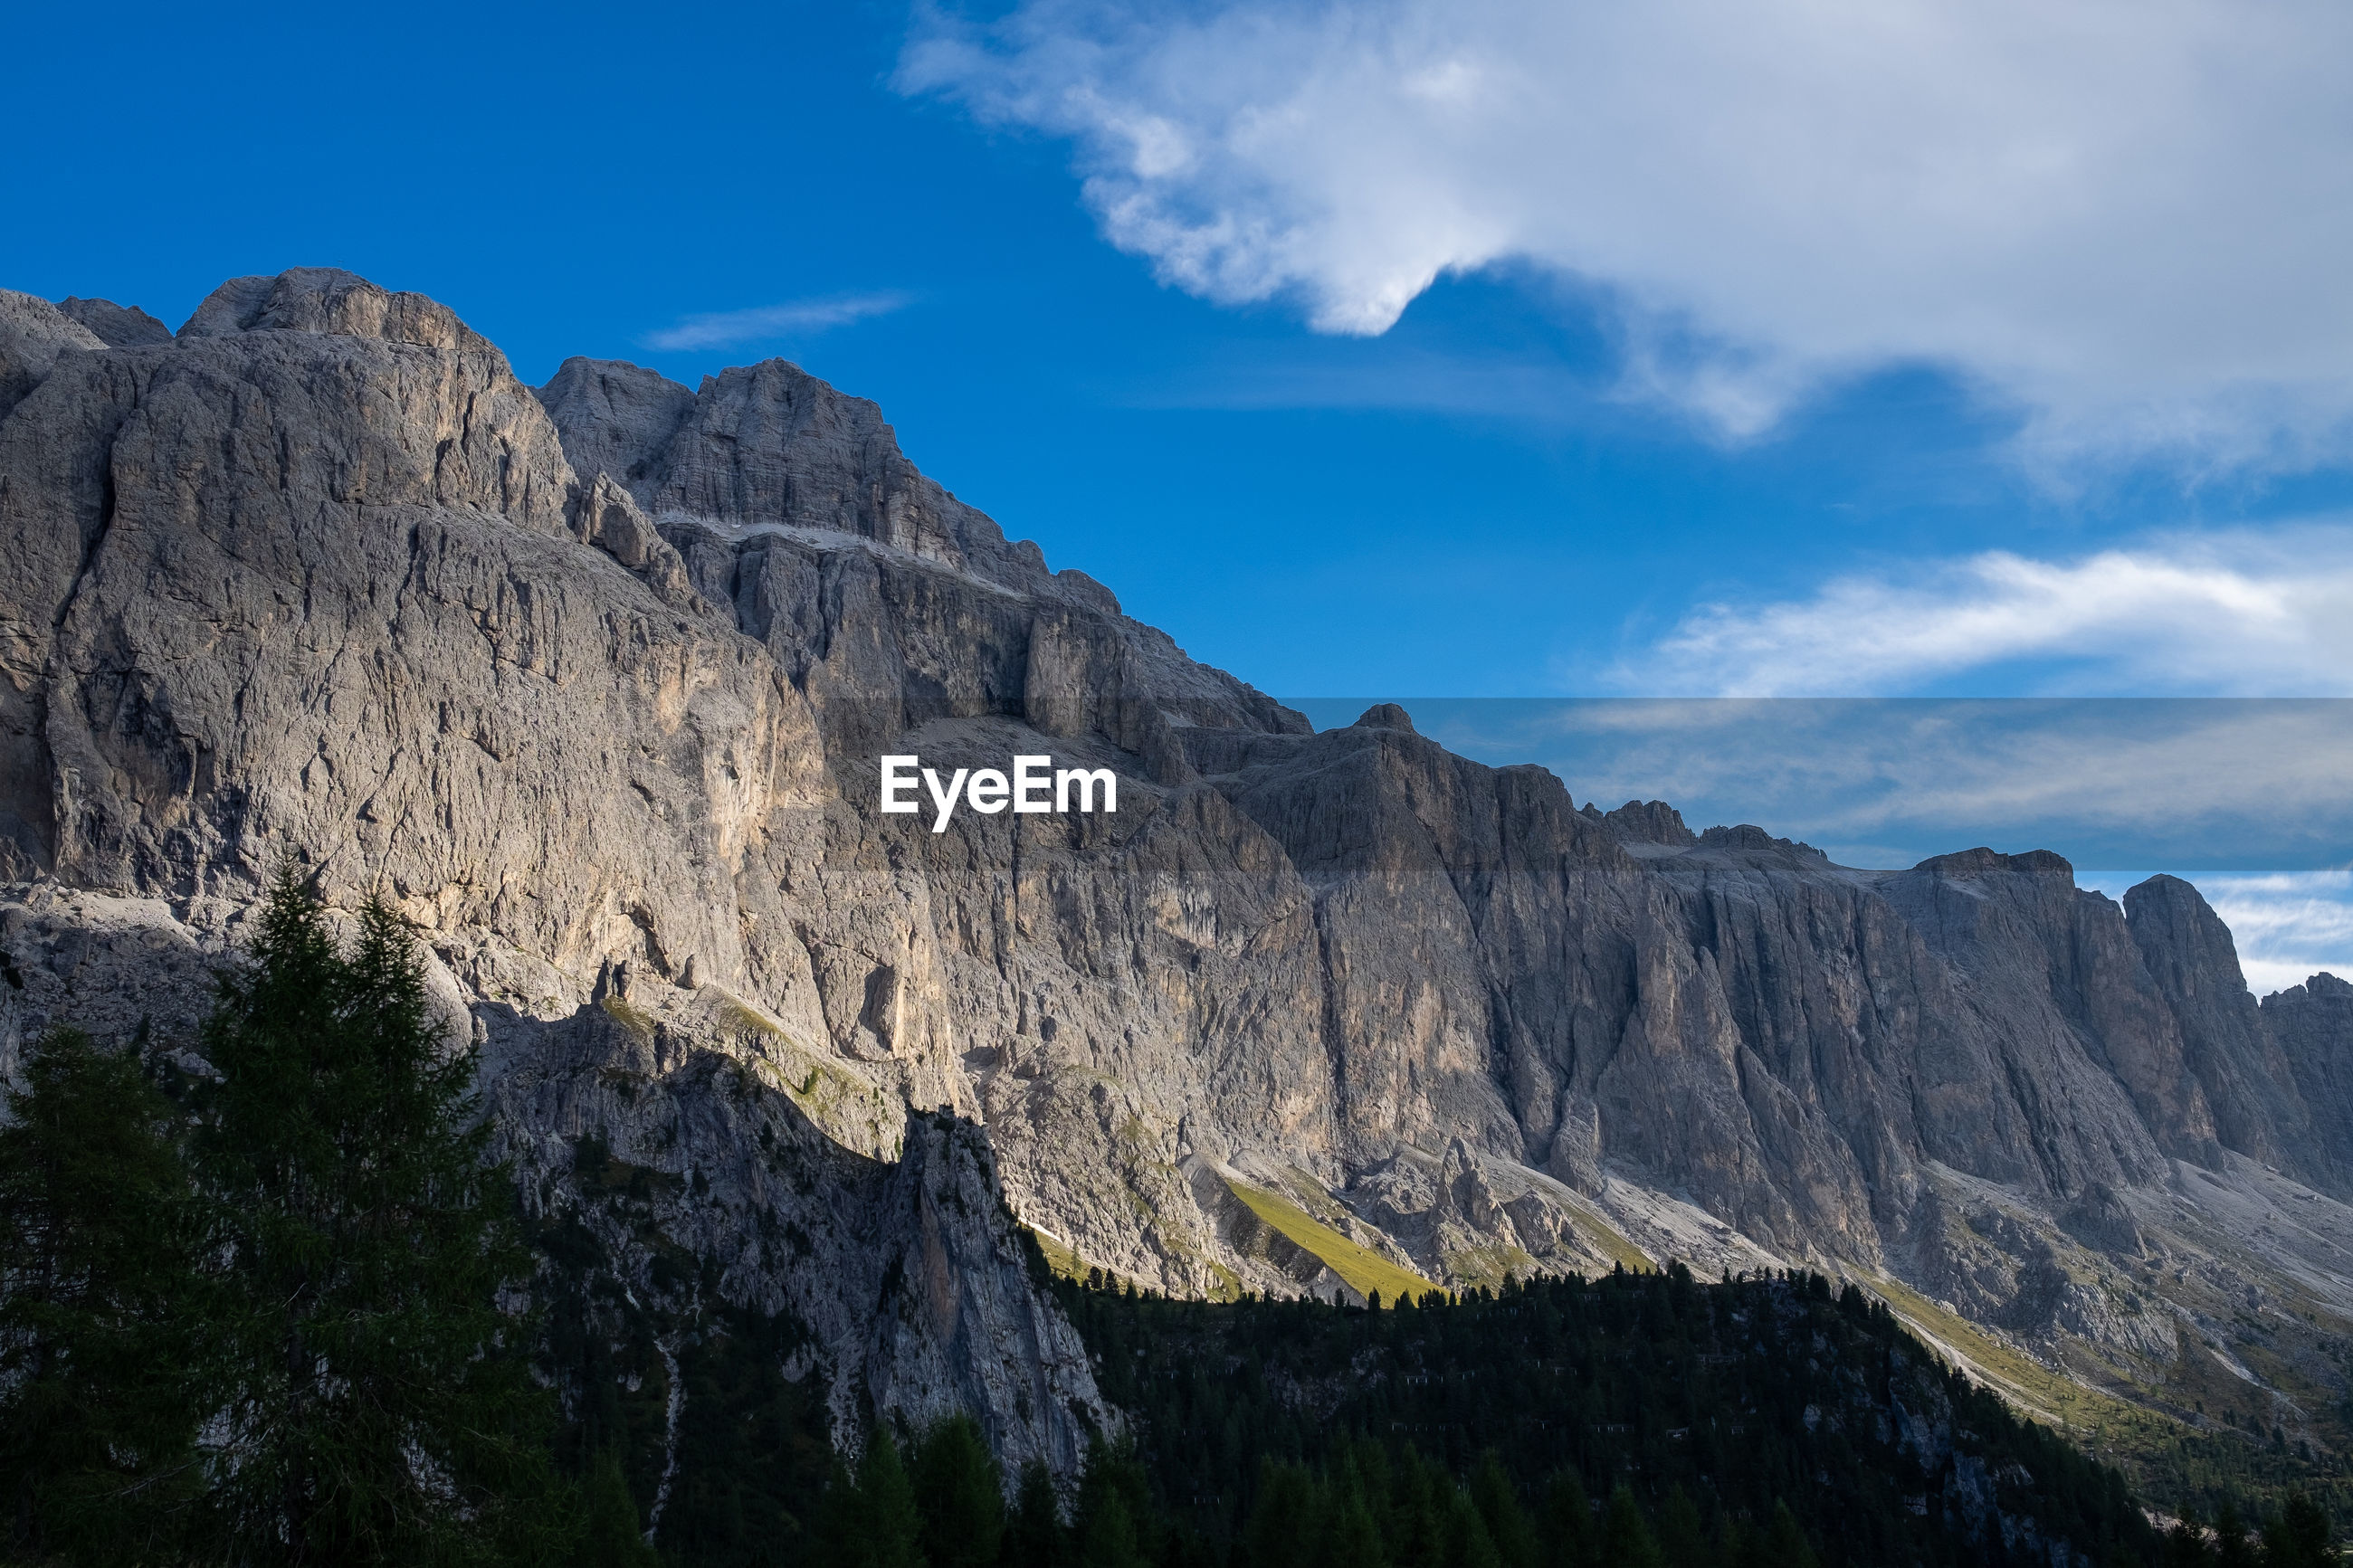 SCENIC VIEW OF ROCKY MOUNTAIN AGAINST SKY